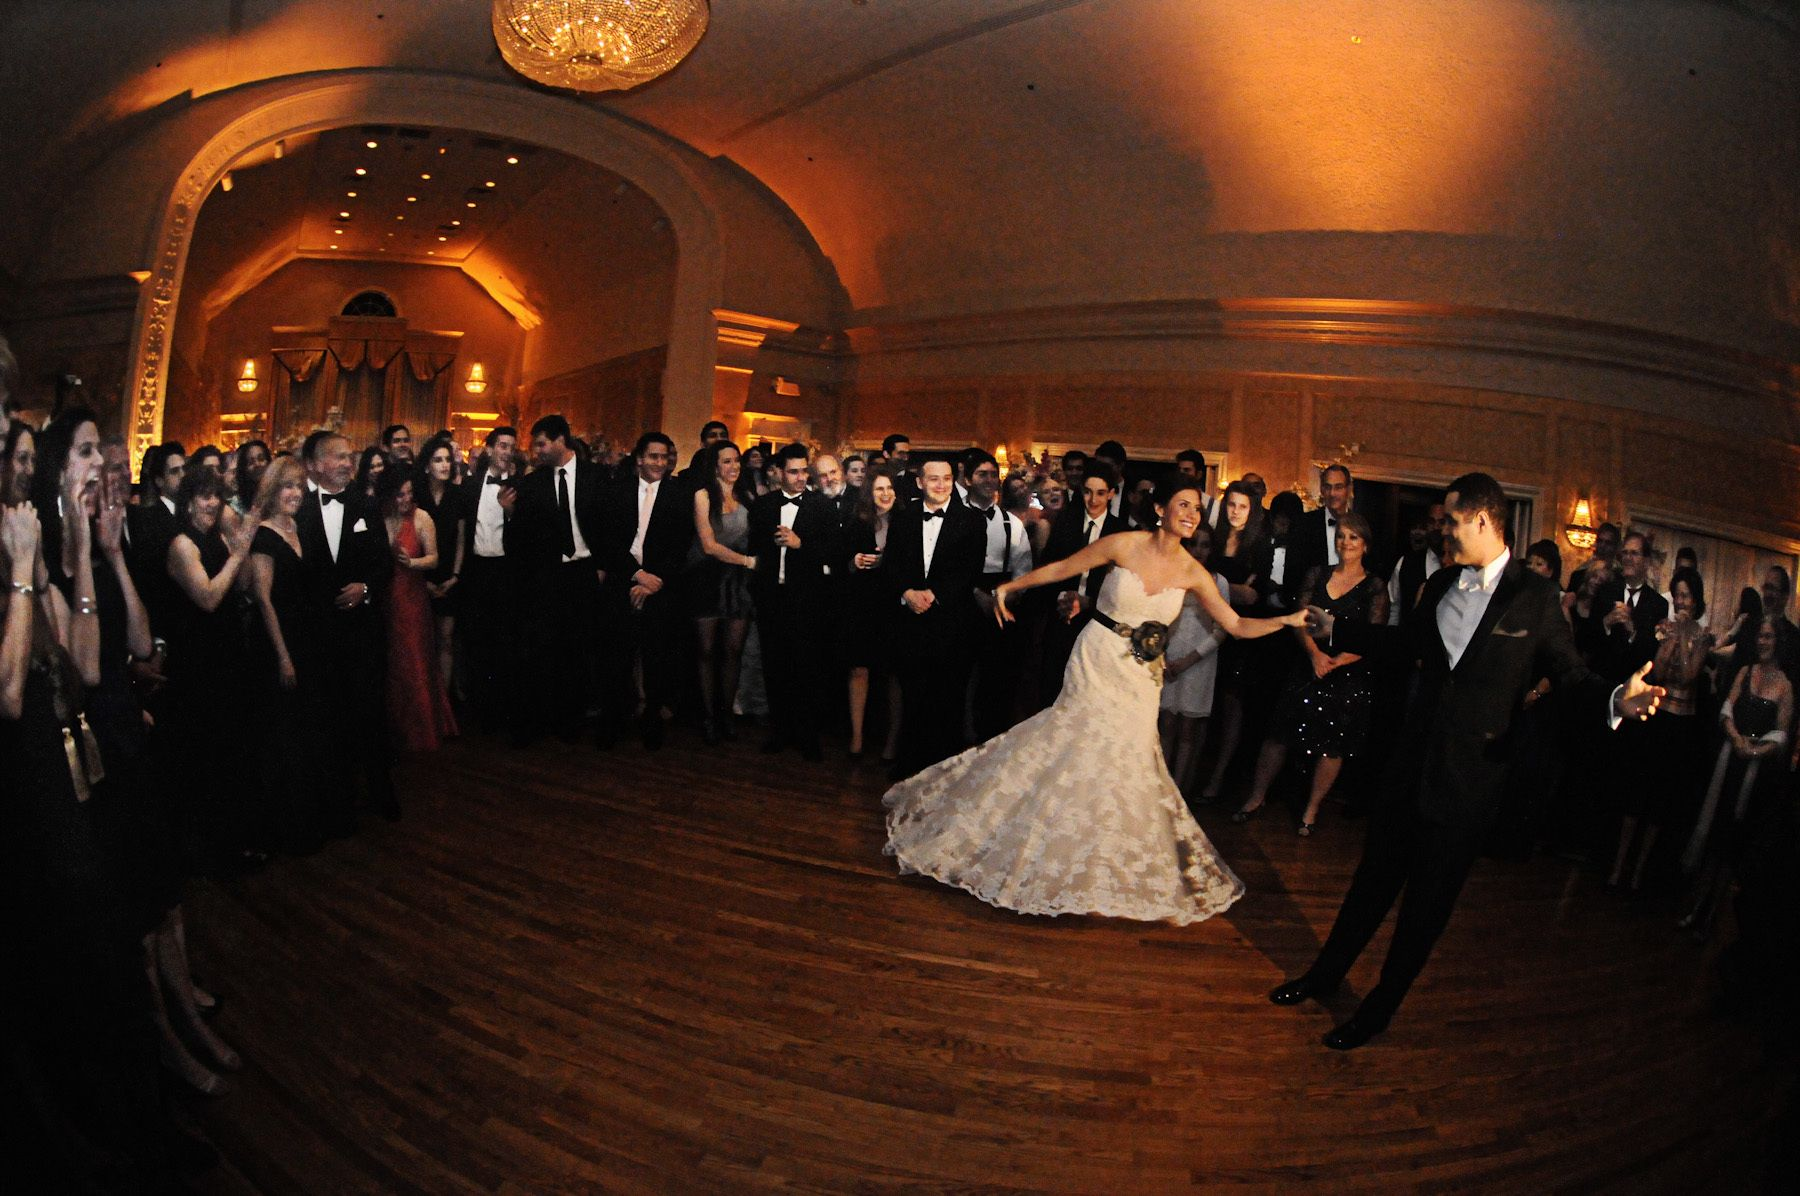 (courtesy of The Best New Jersey Wedding Photography - Dean Michaels Studio)DRESS